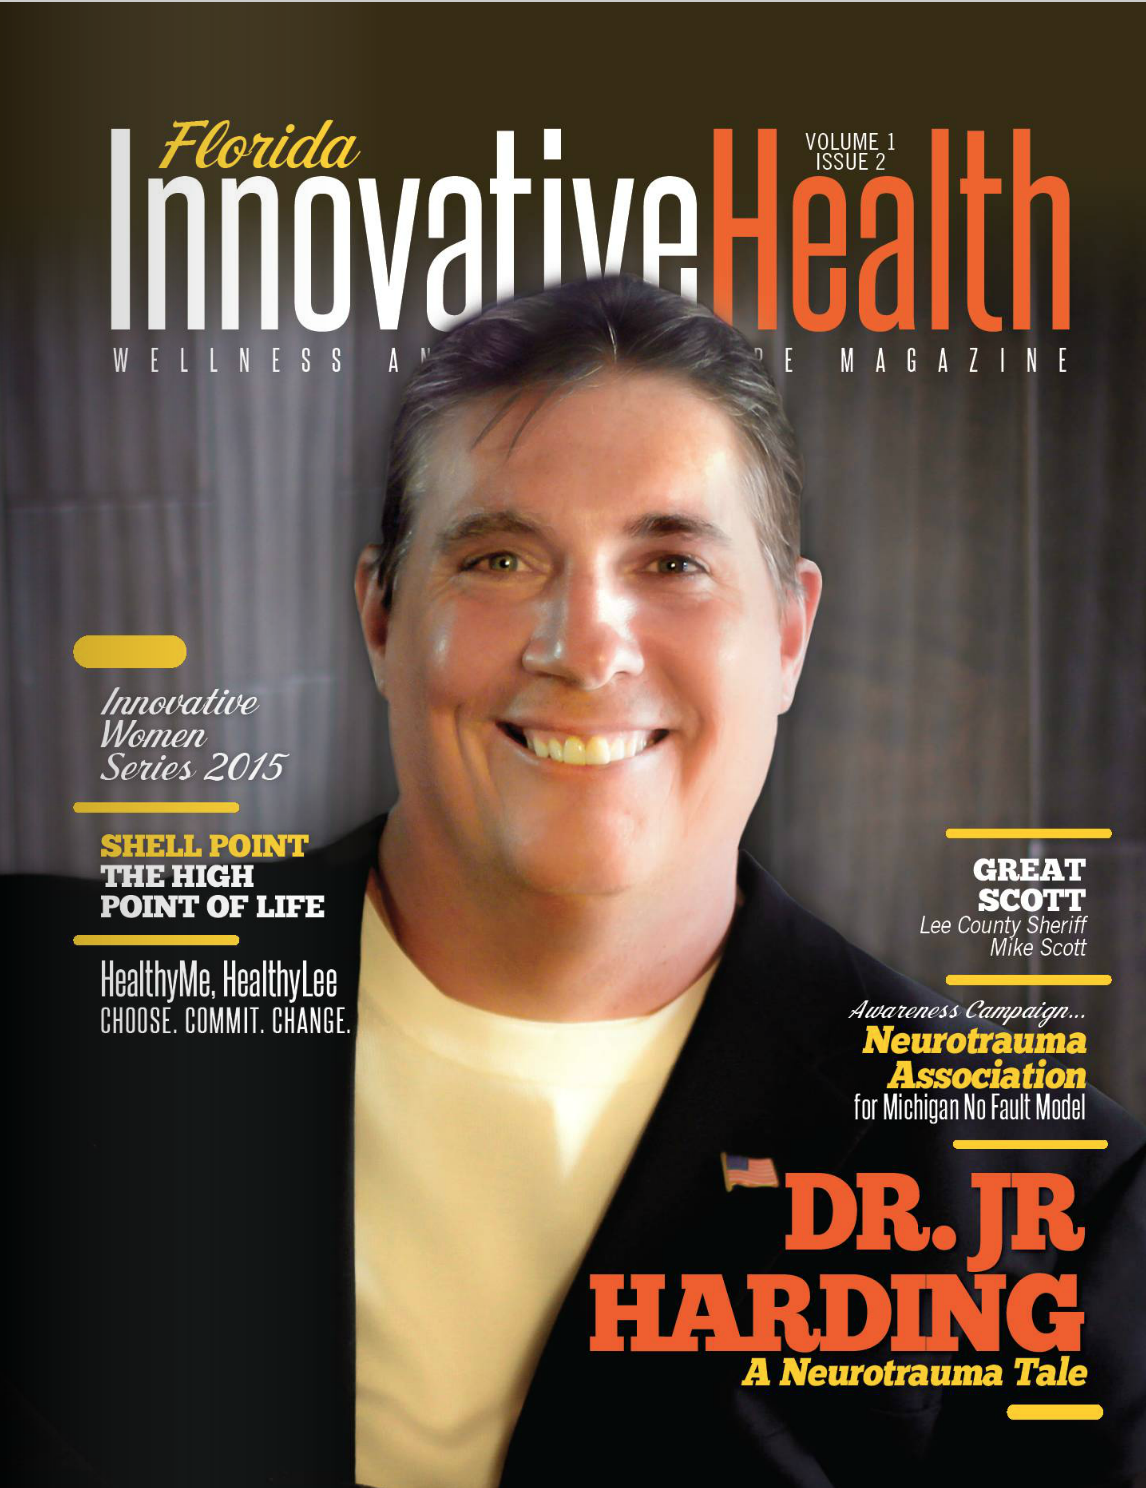 JR Harding FL Innovative Health cover